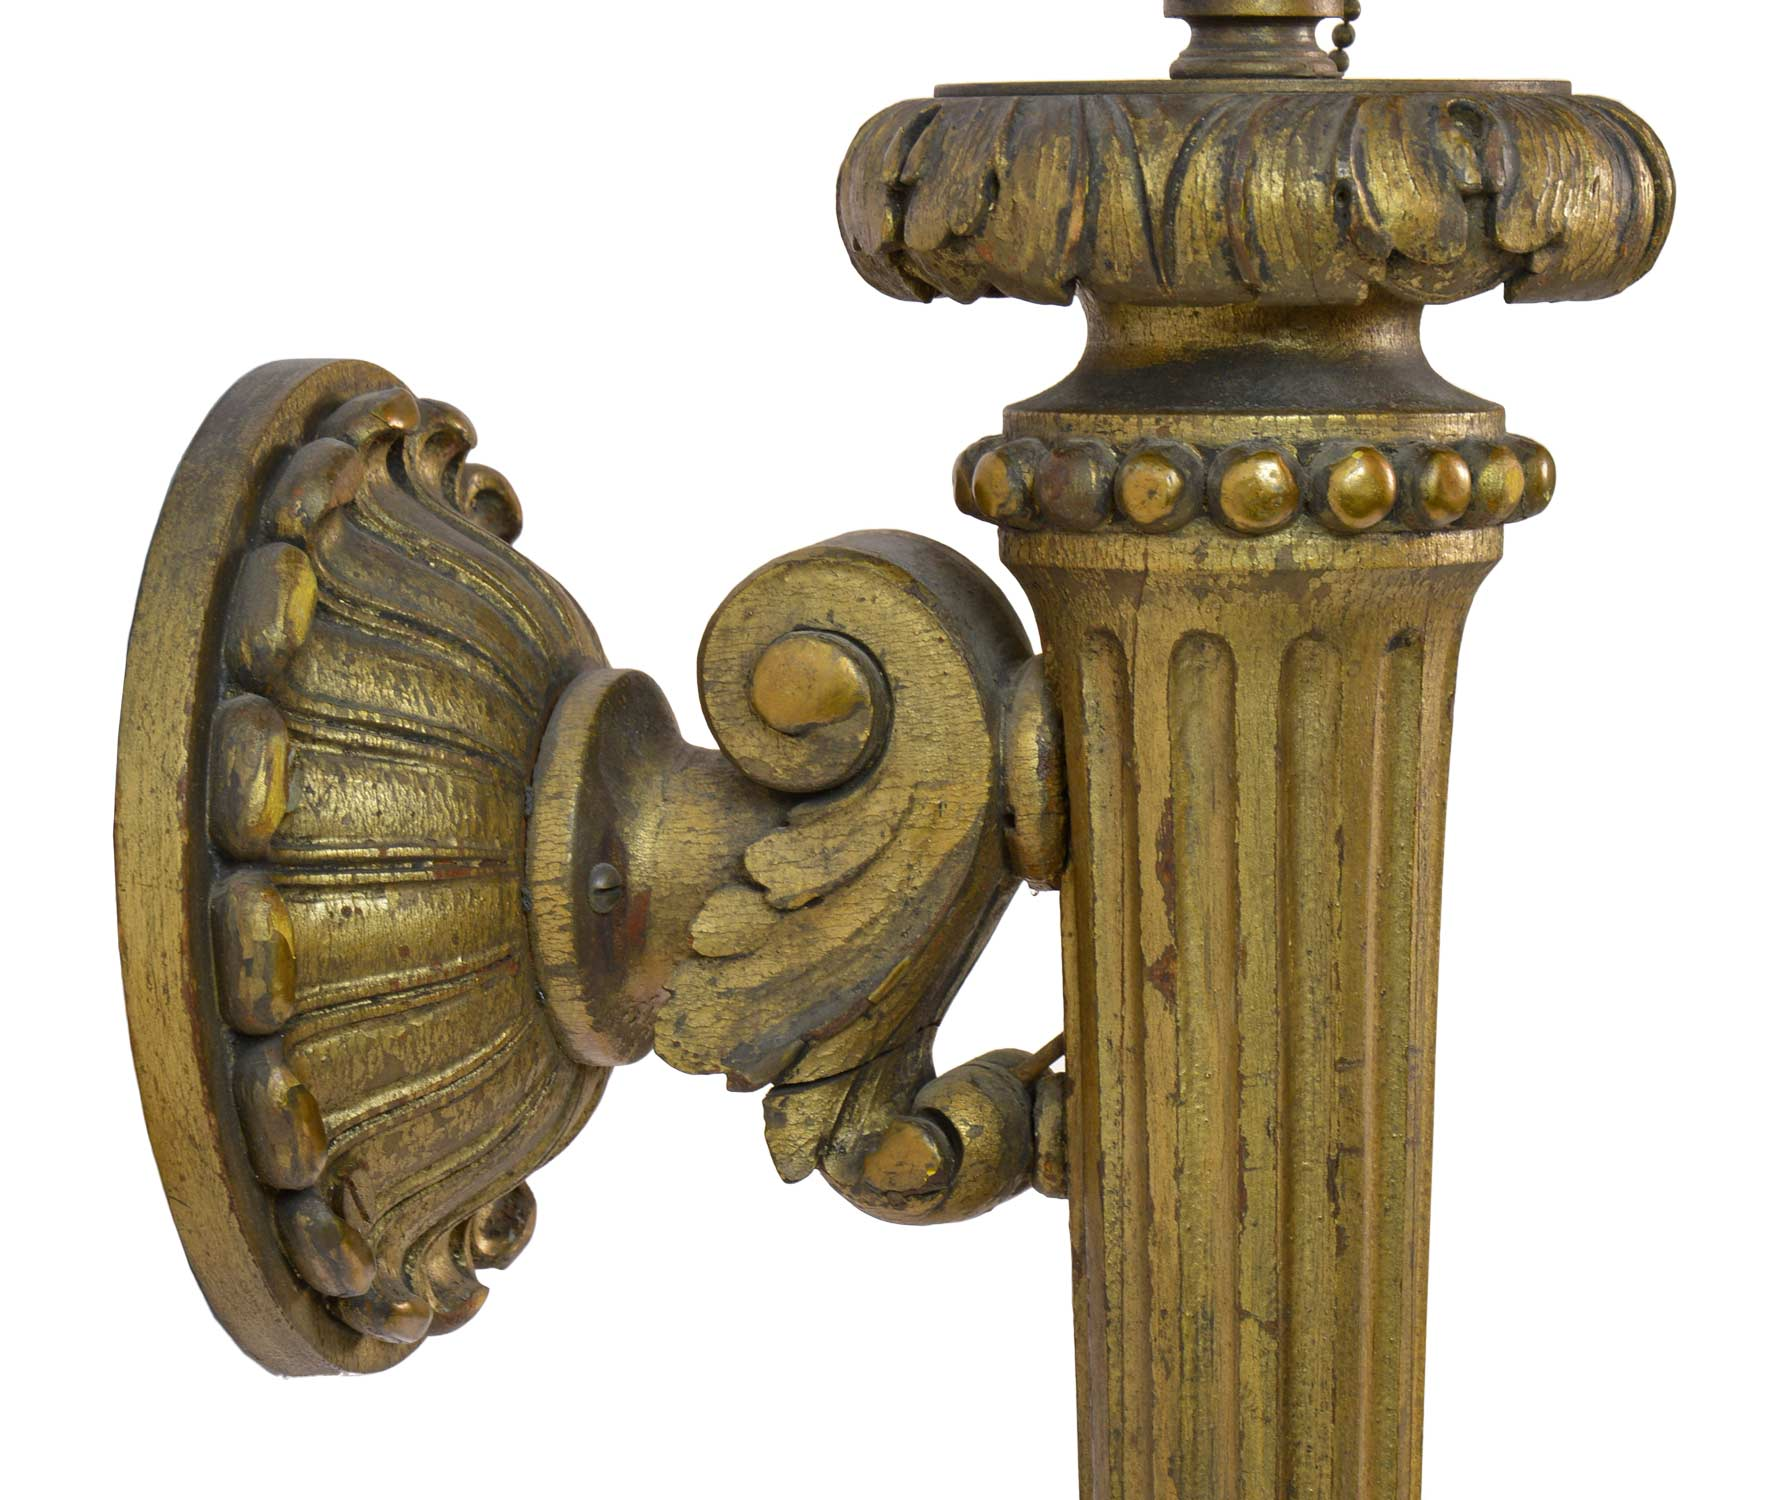 46178-wood-and-brass-sconce-top-back-detail.jpg